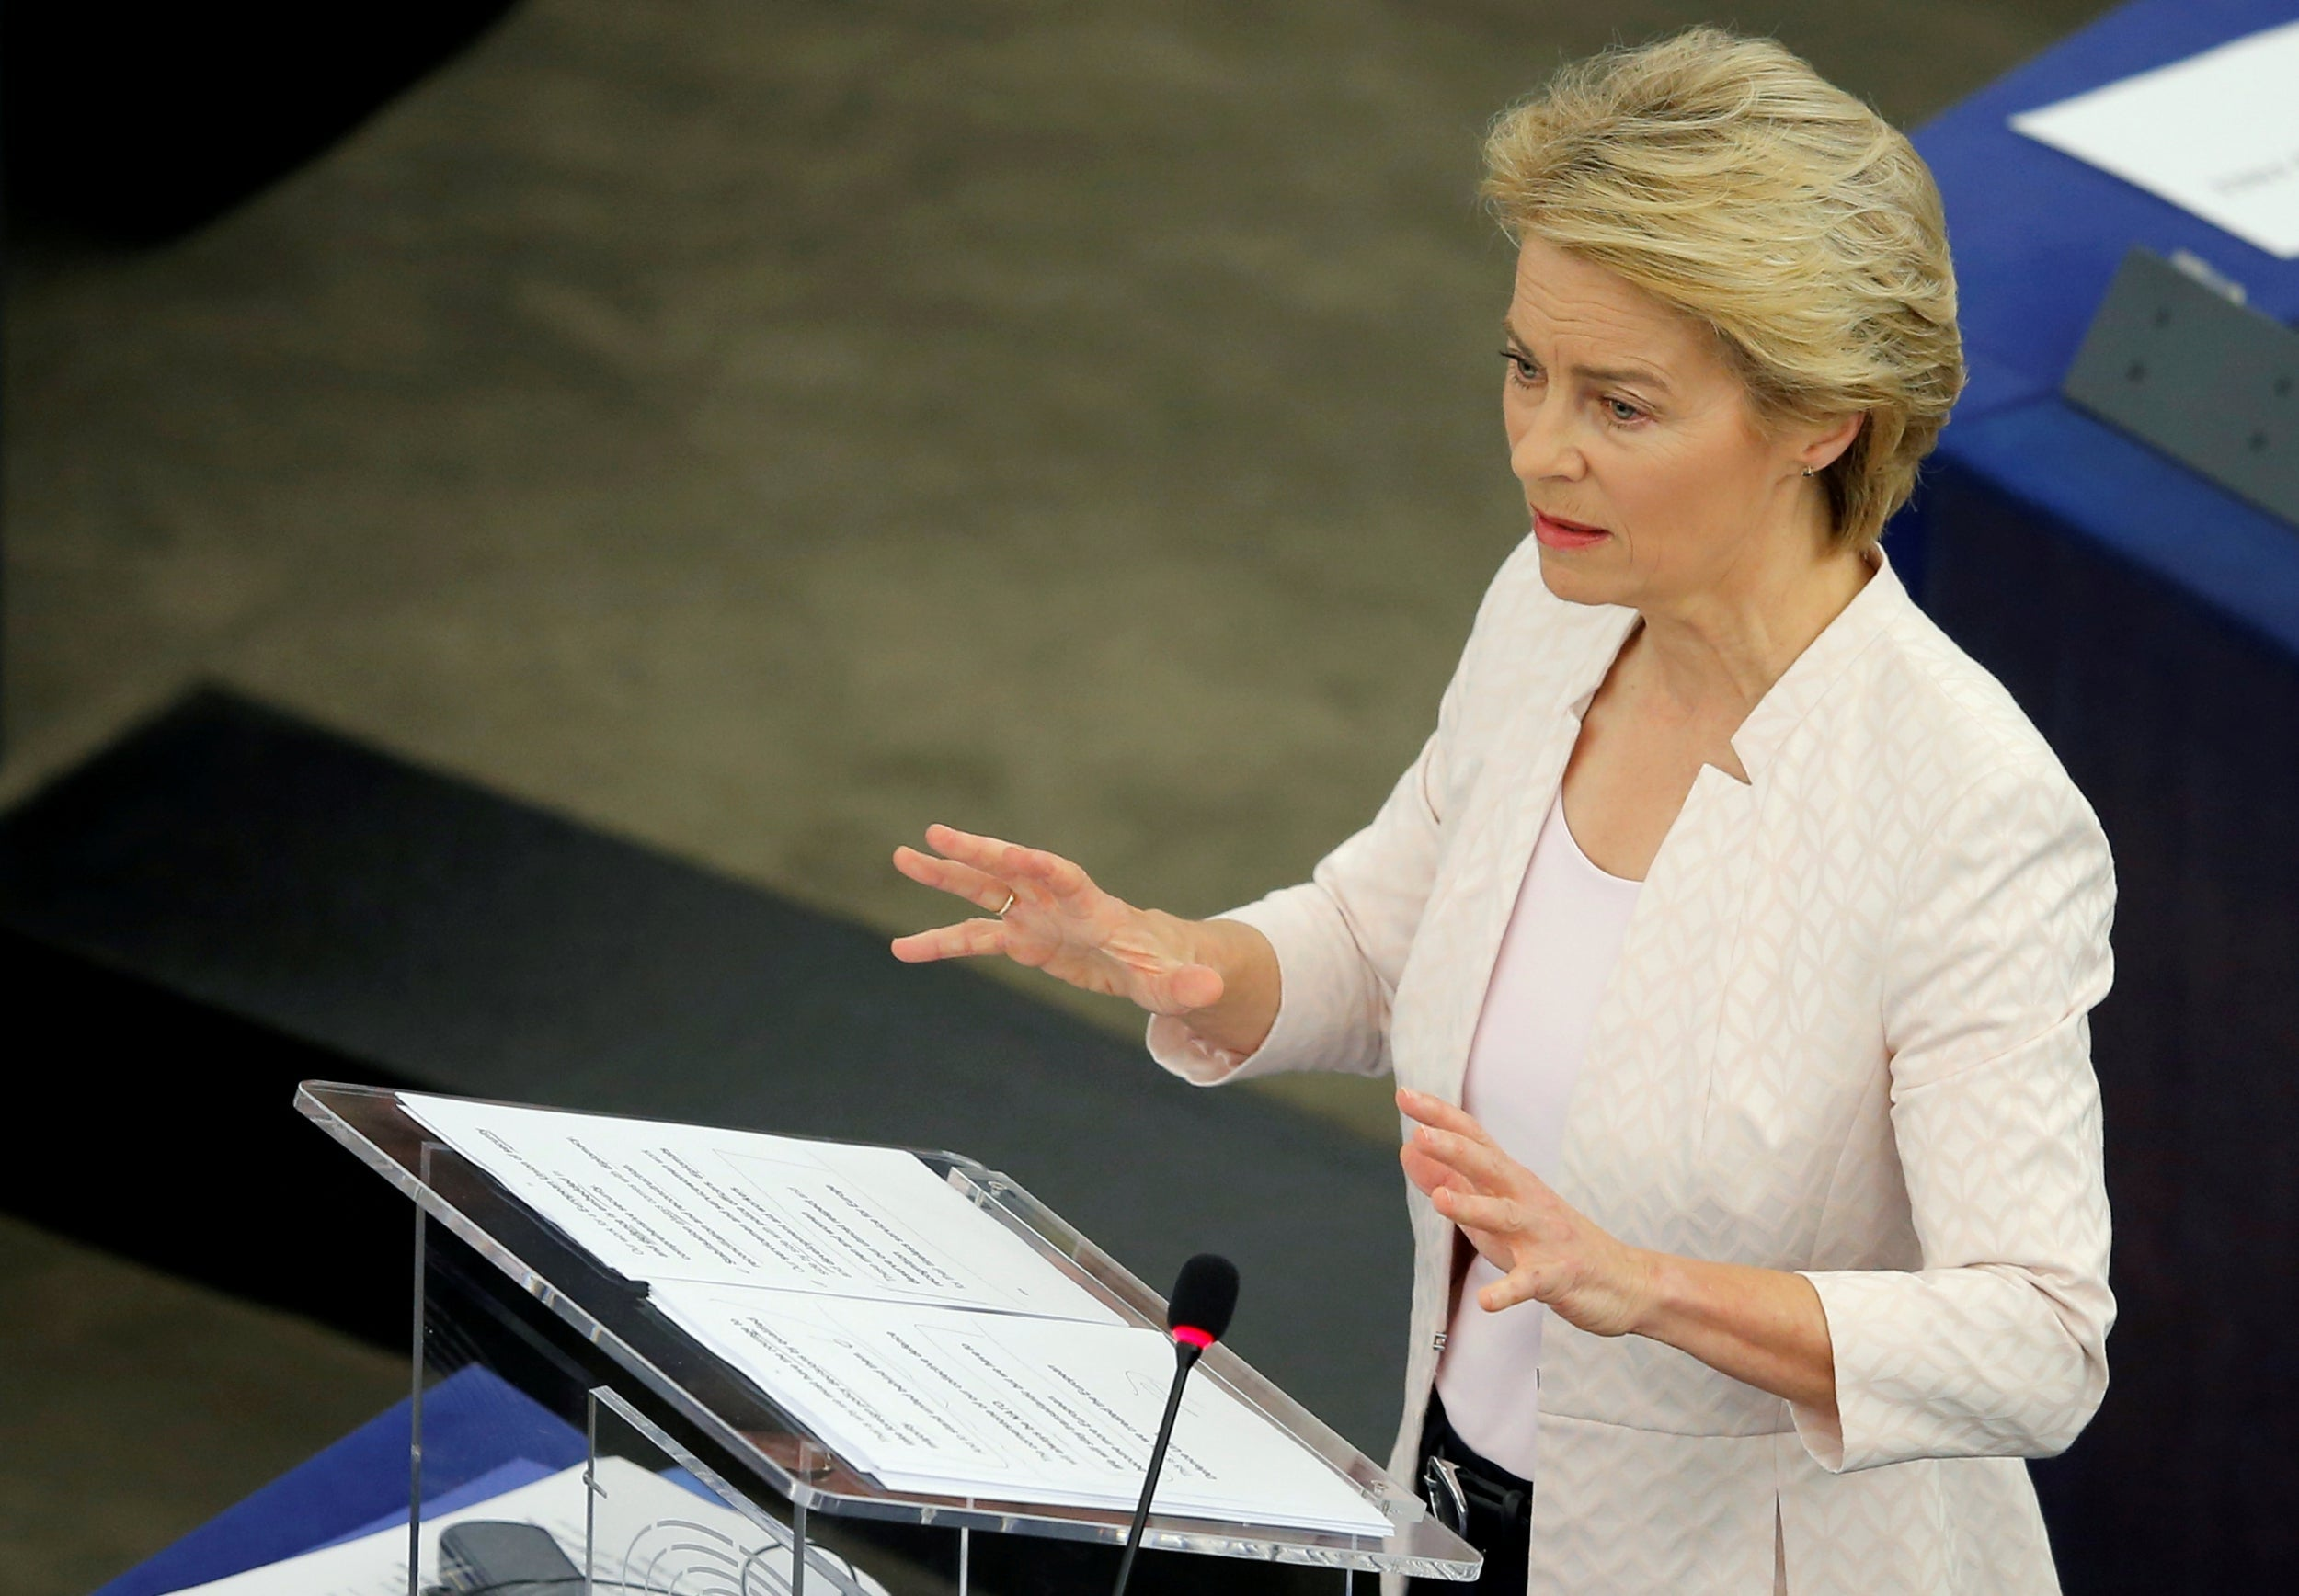 Ursula von der Leyen elected as next EU Commission president replacing Jean-Claude Juncker 9